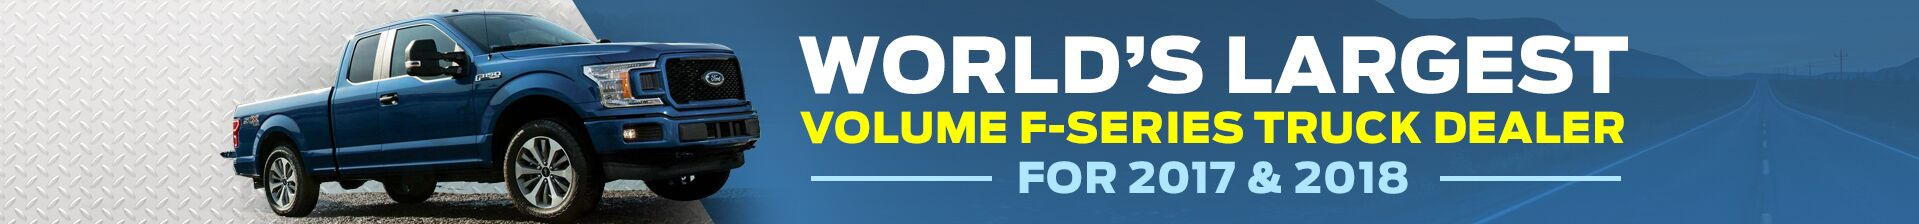 Worlds Largest Volume F-Series